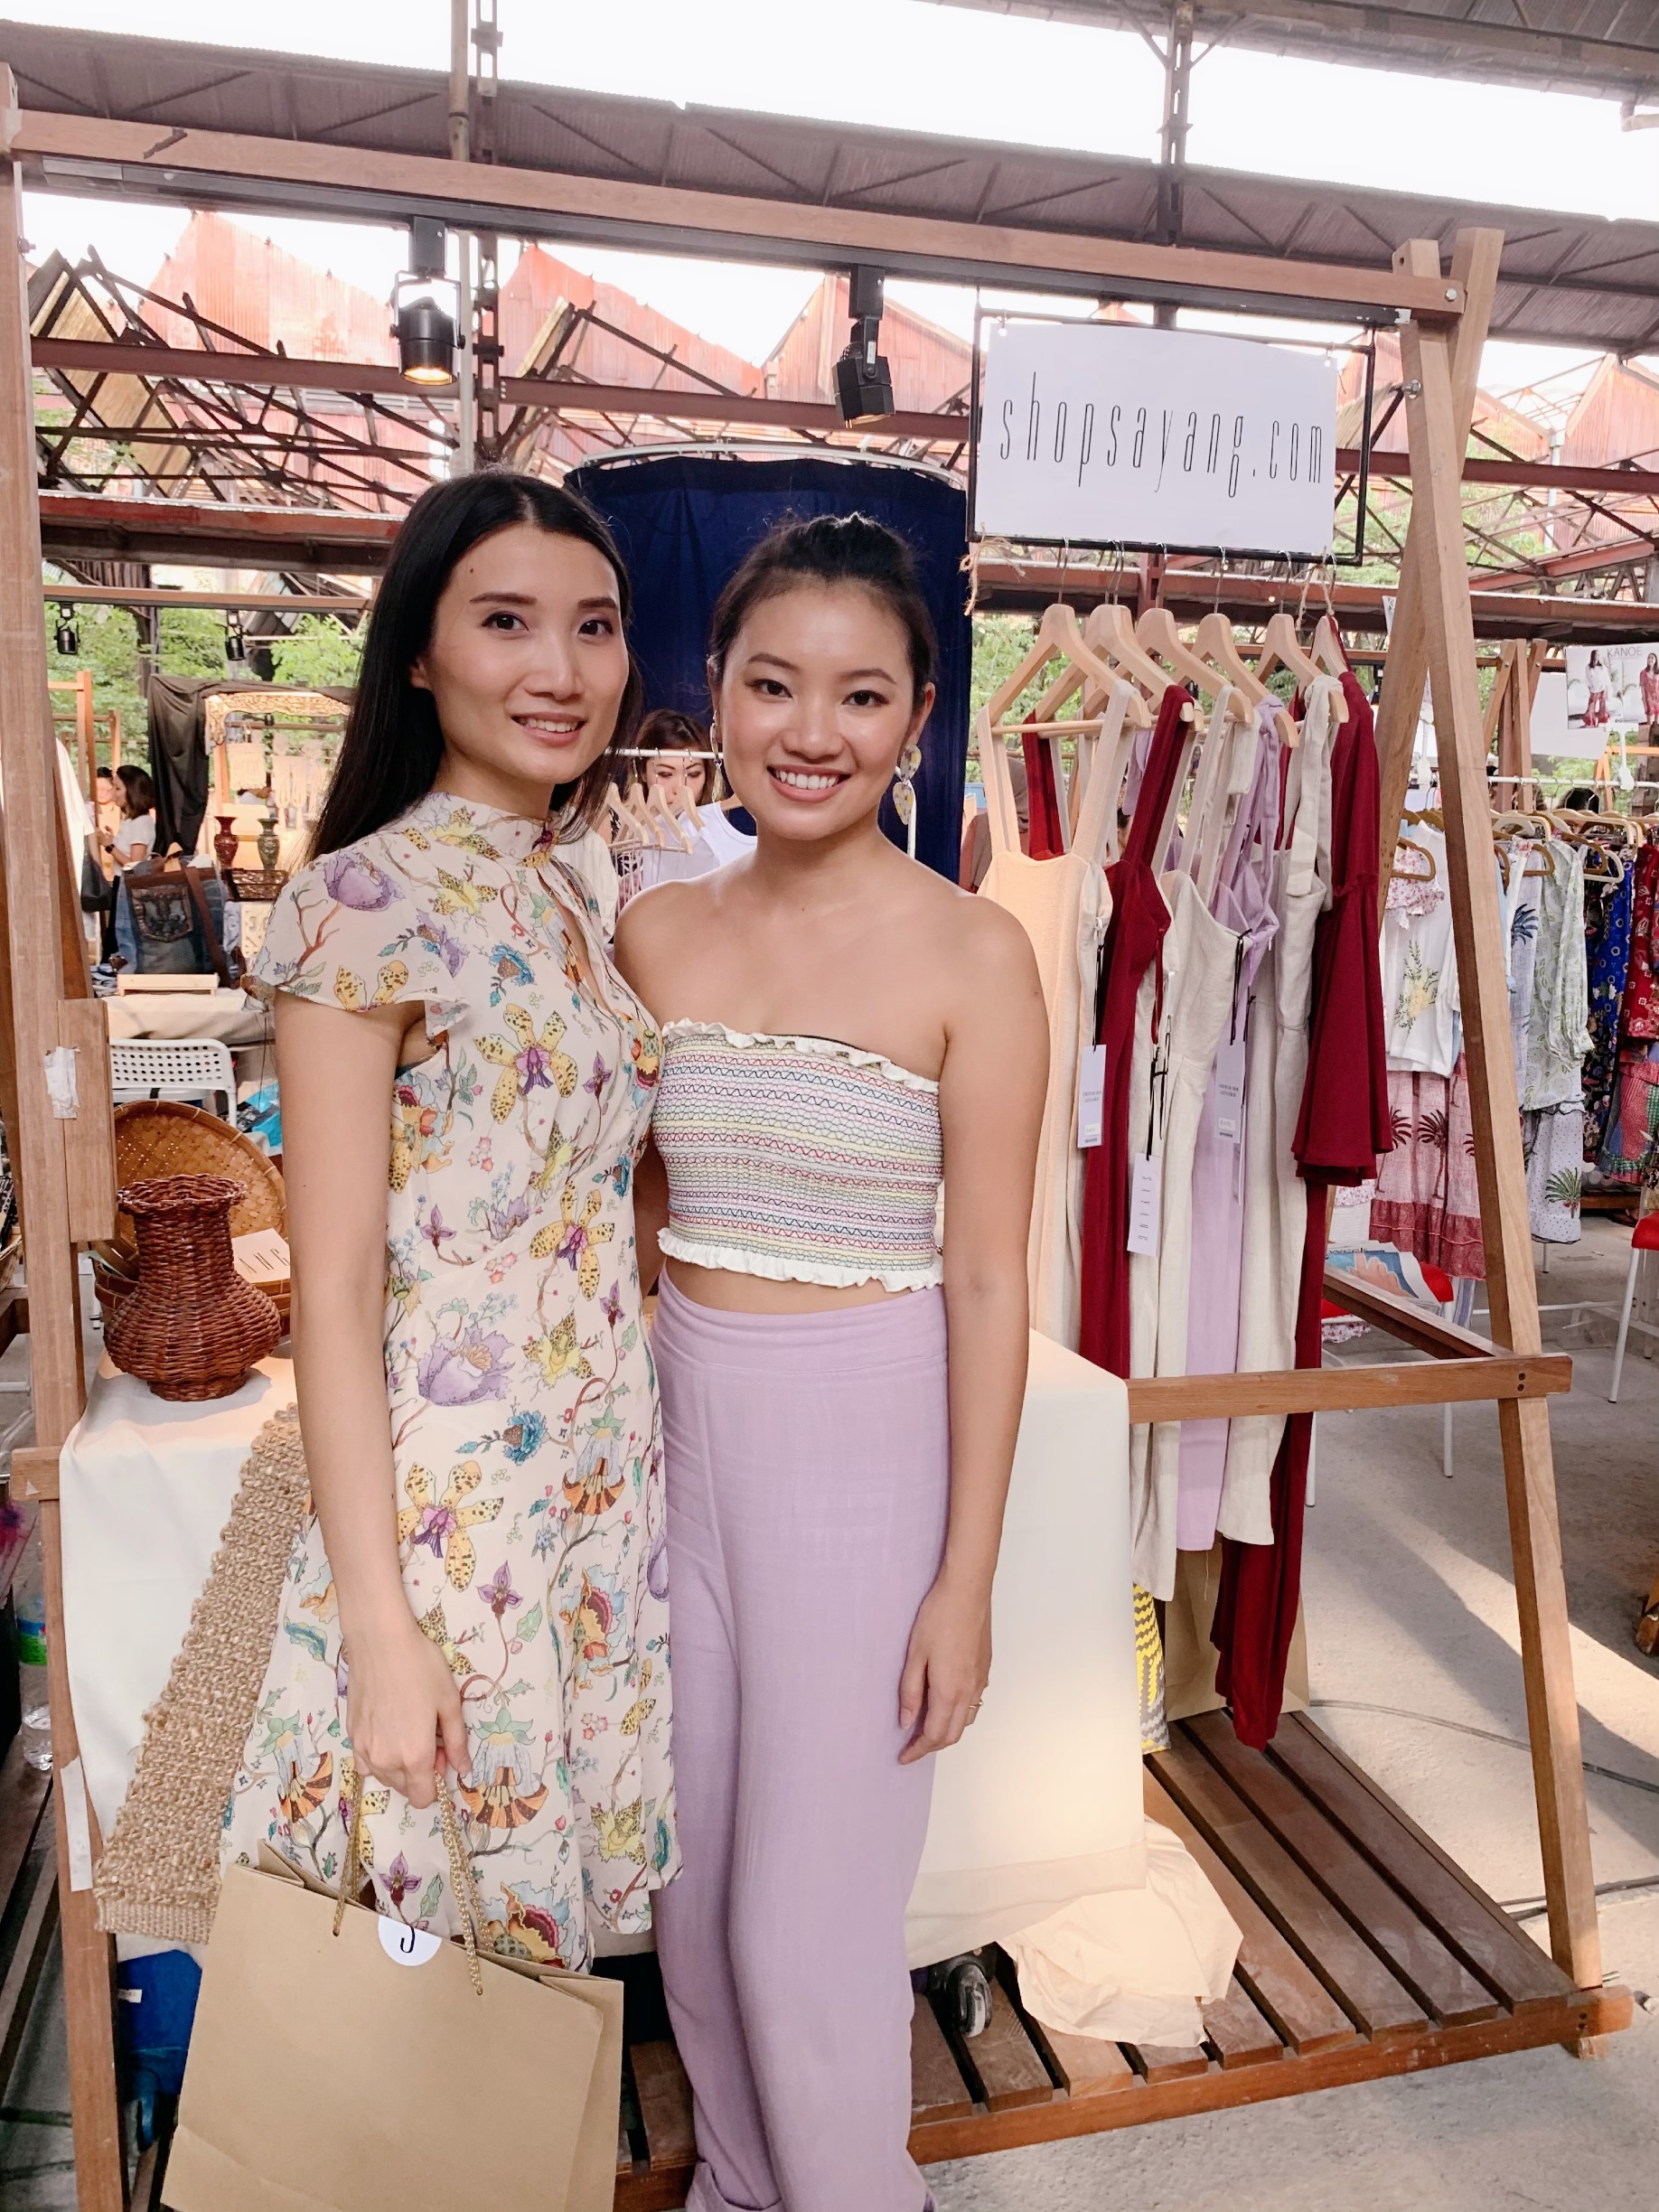 #SAYANGBABES - Be ready to top the world with a twist of femininity and minimalism that cares for the People, Planet and Fashion!Check out SAYANG at www.ShopSayang.com and their instagram page.